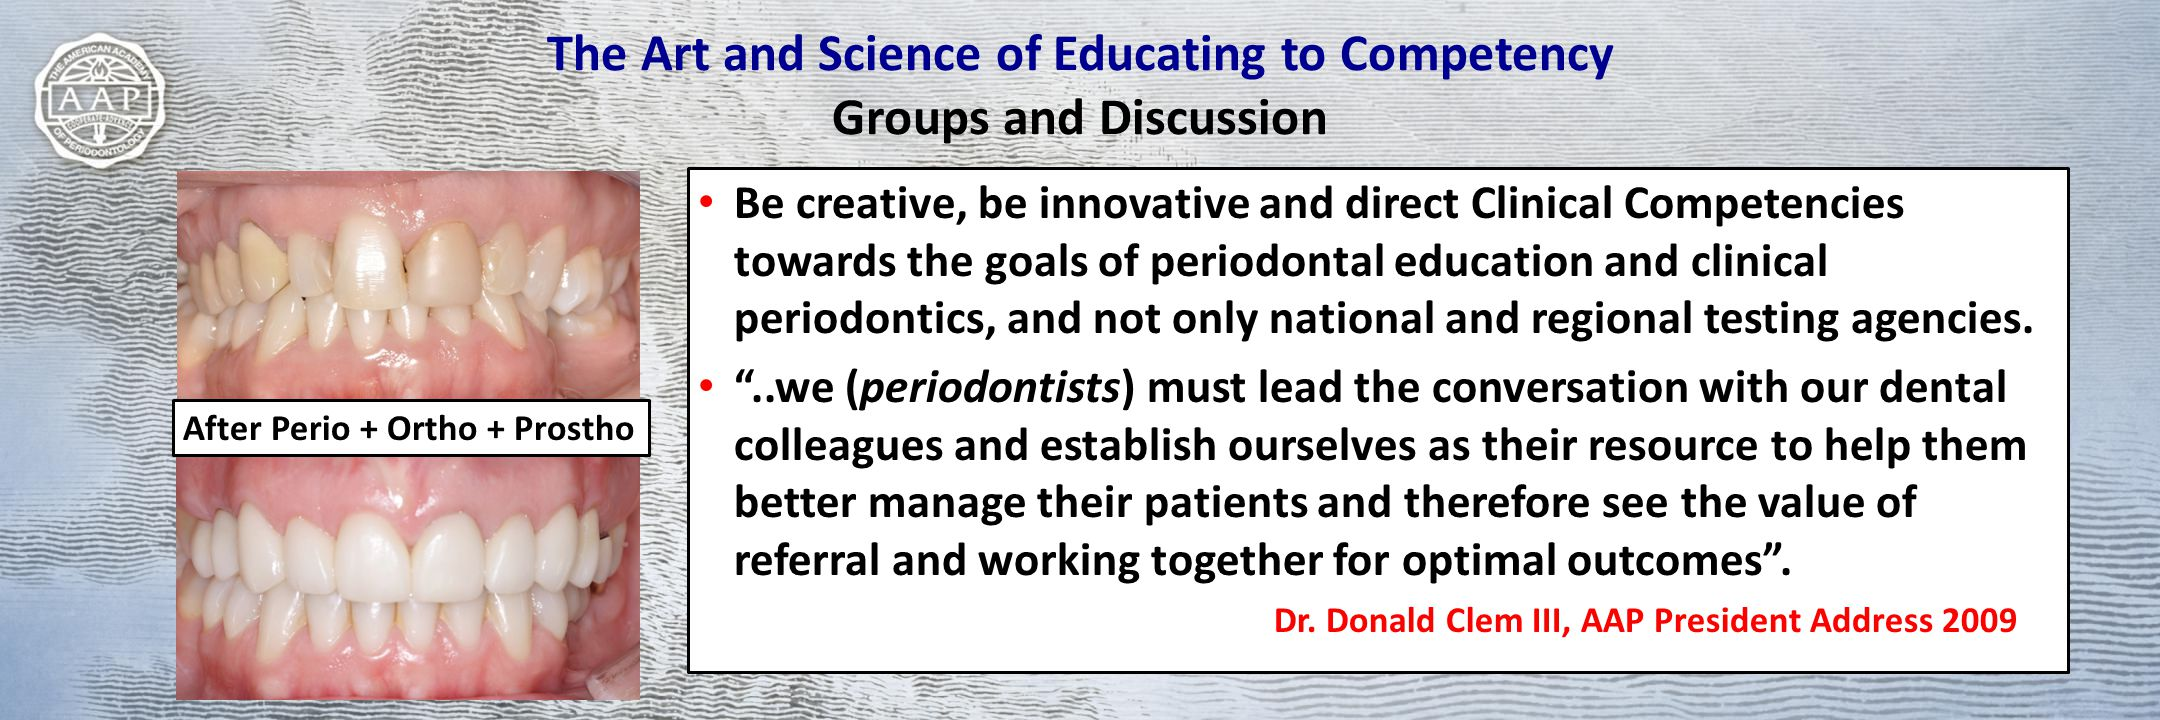 The Art and Science of Educating to Competency Groups and Discussion Be creative, be innovative and direct Clinical Competencies towards the goals of